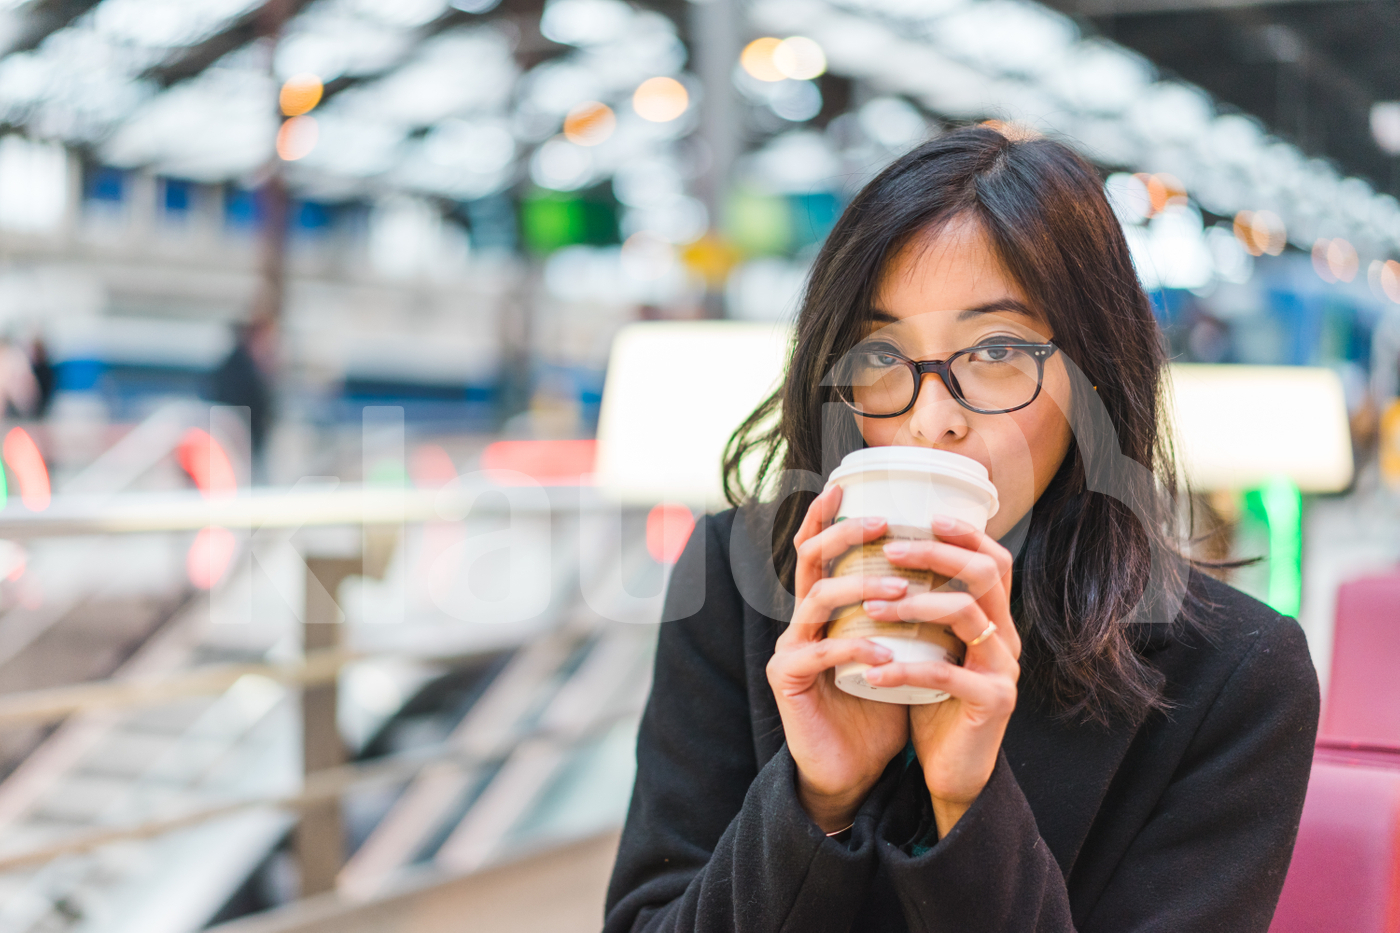 Young Asian woman drinking a coffee